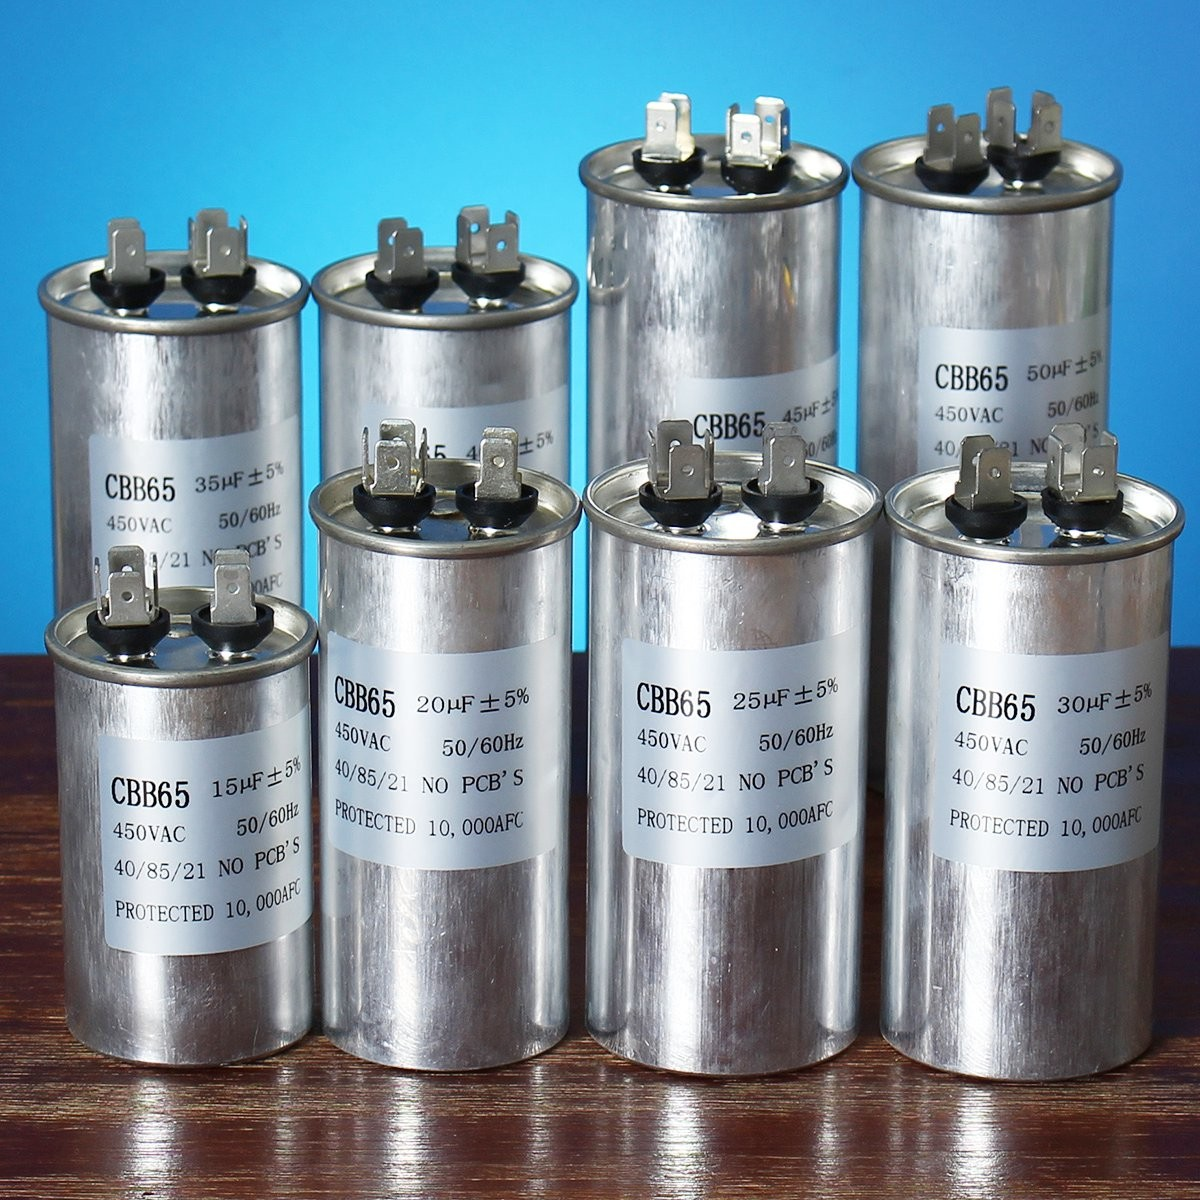 15 50uf Motor Capacitor Cbb65 450vac Air Conditioner